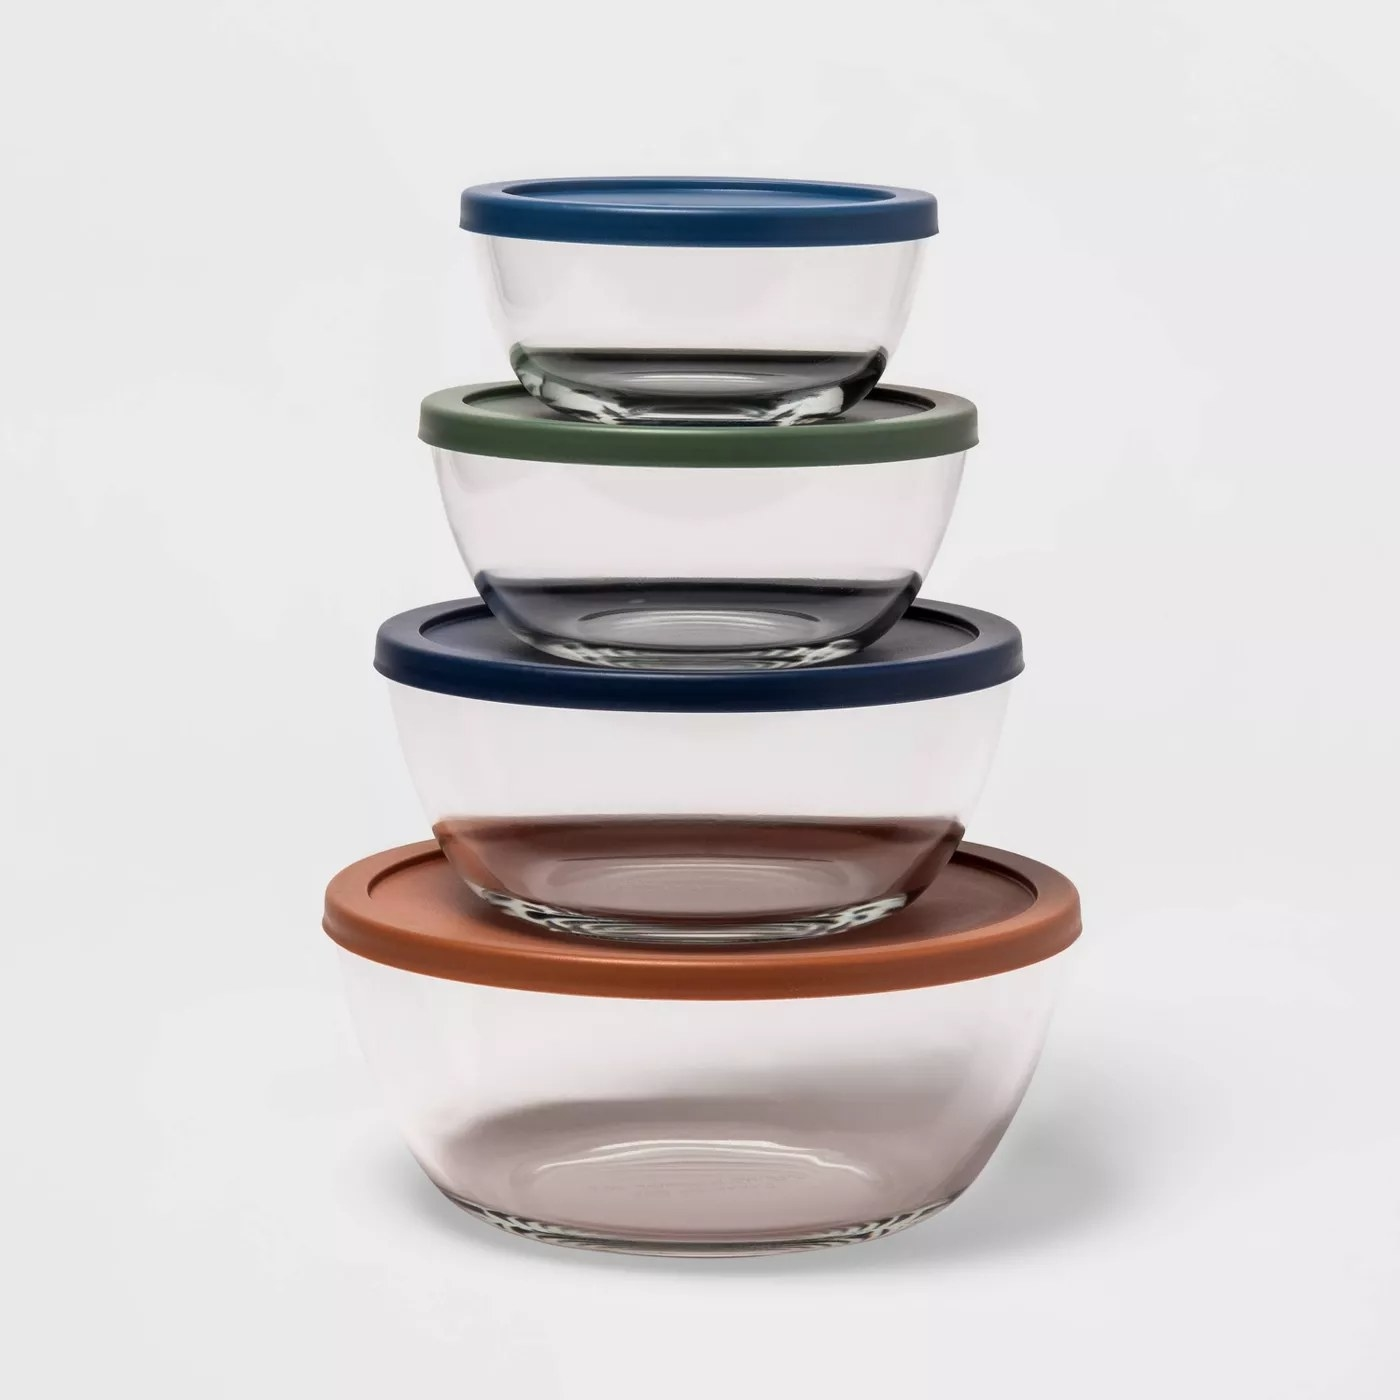 The four containers with lids on, stacked on top of each other